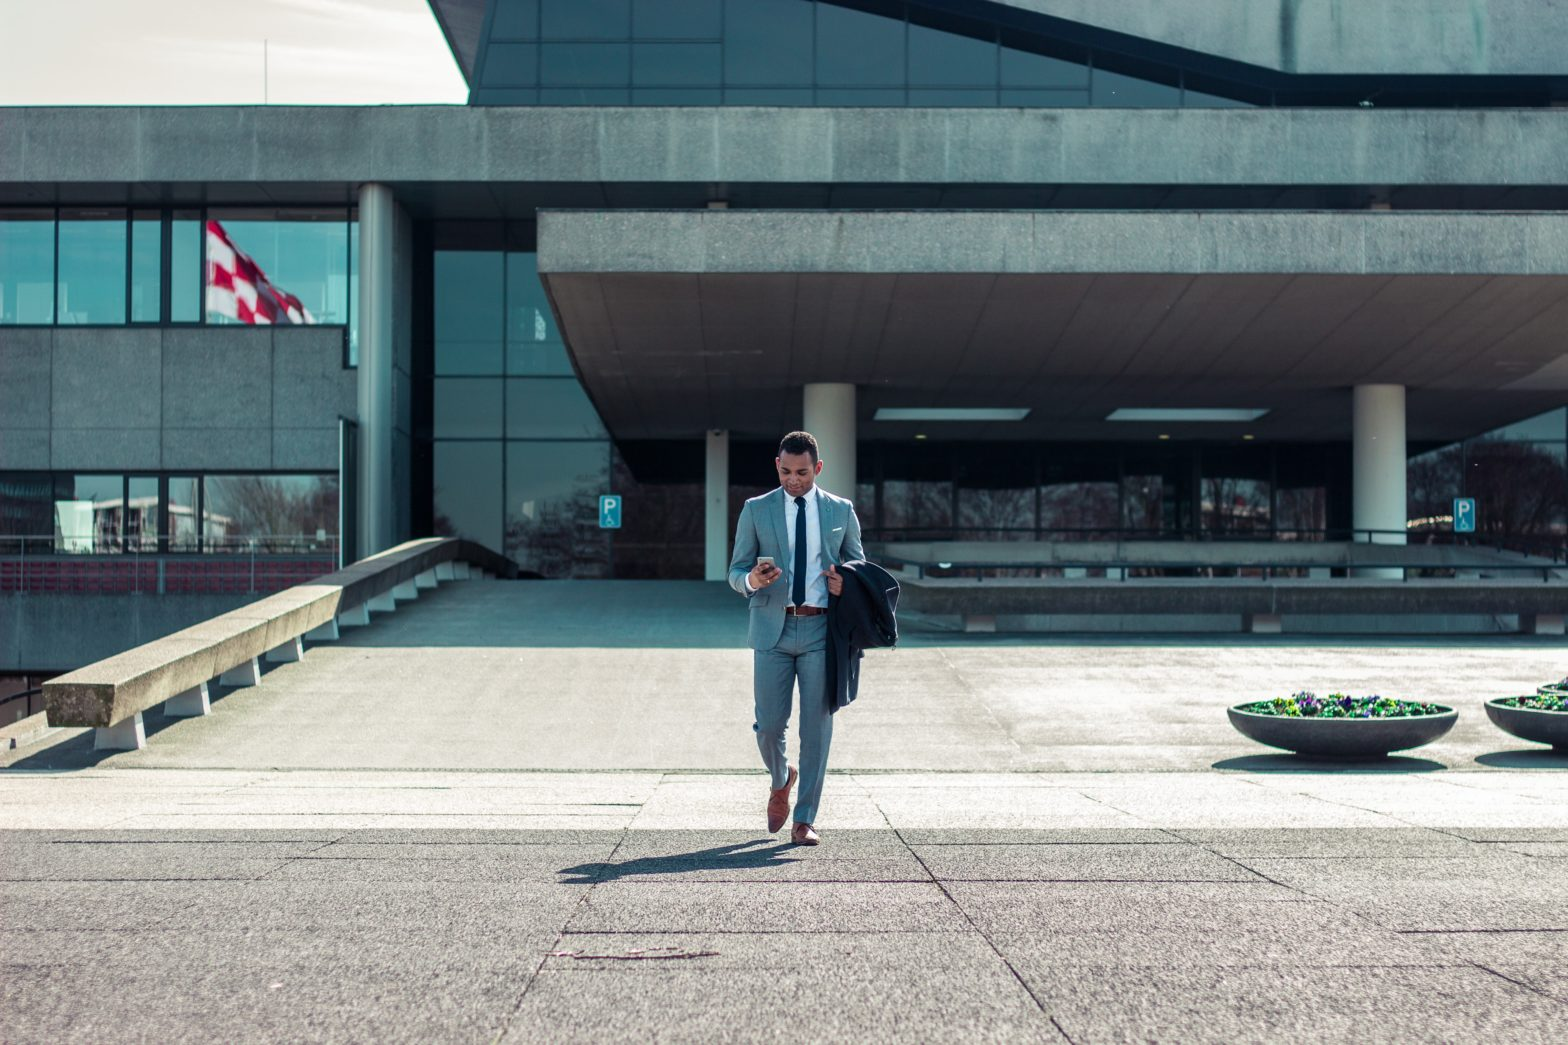 Man in suit in front of a building